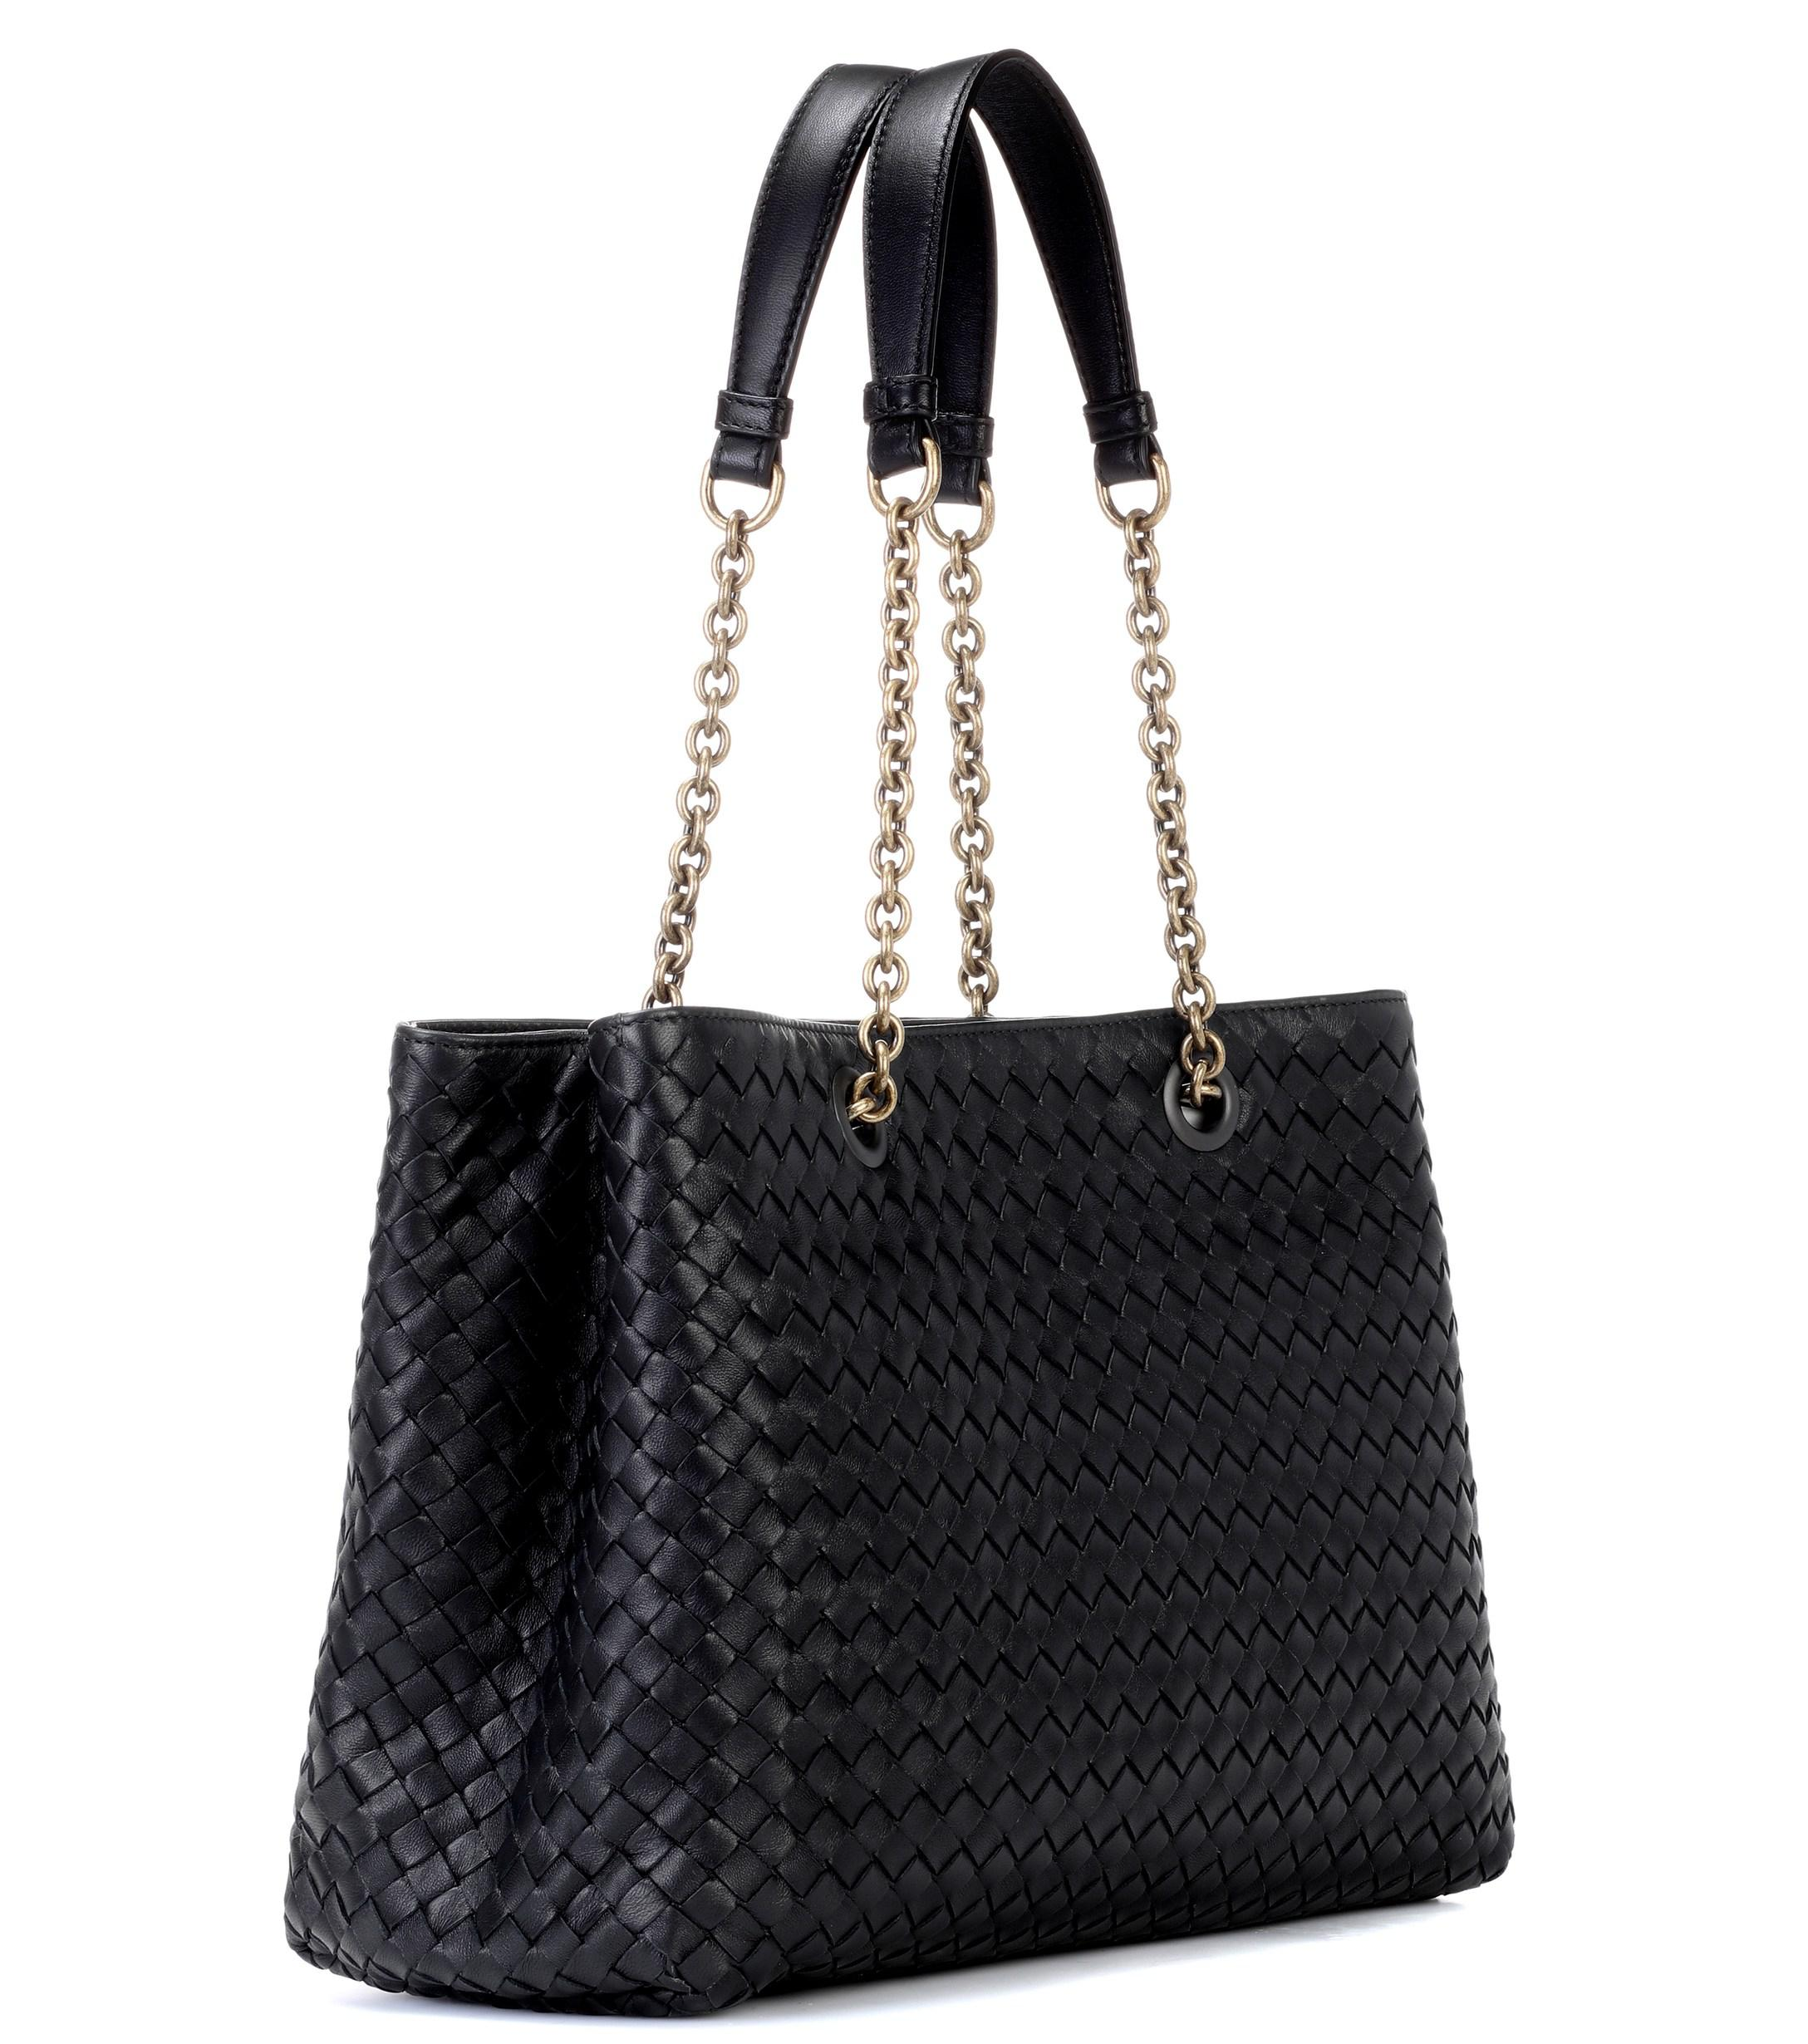 5500f88817 Bottega Veneta Intrecciato Leather Shoulder Bag in Black - Lyst